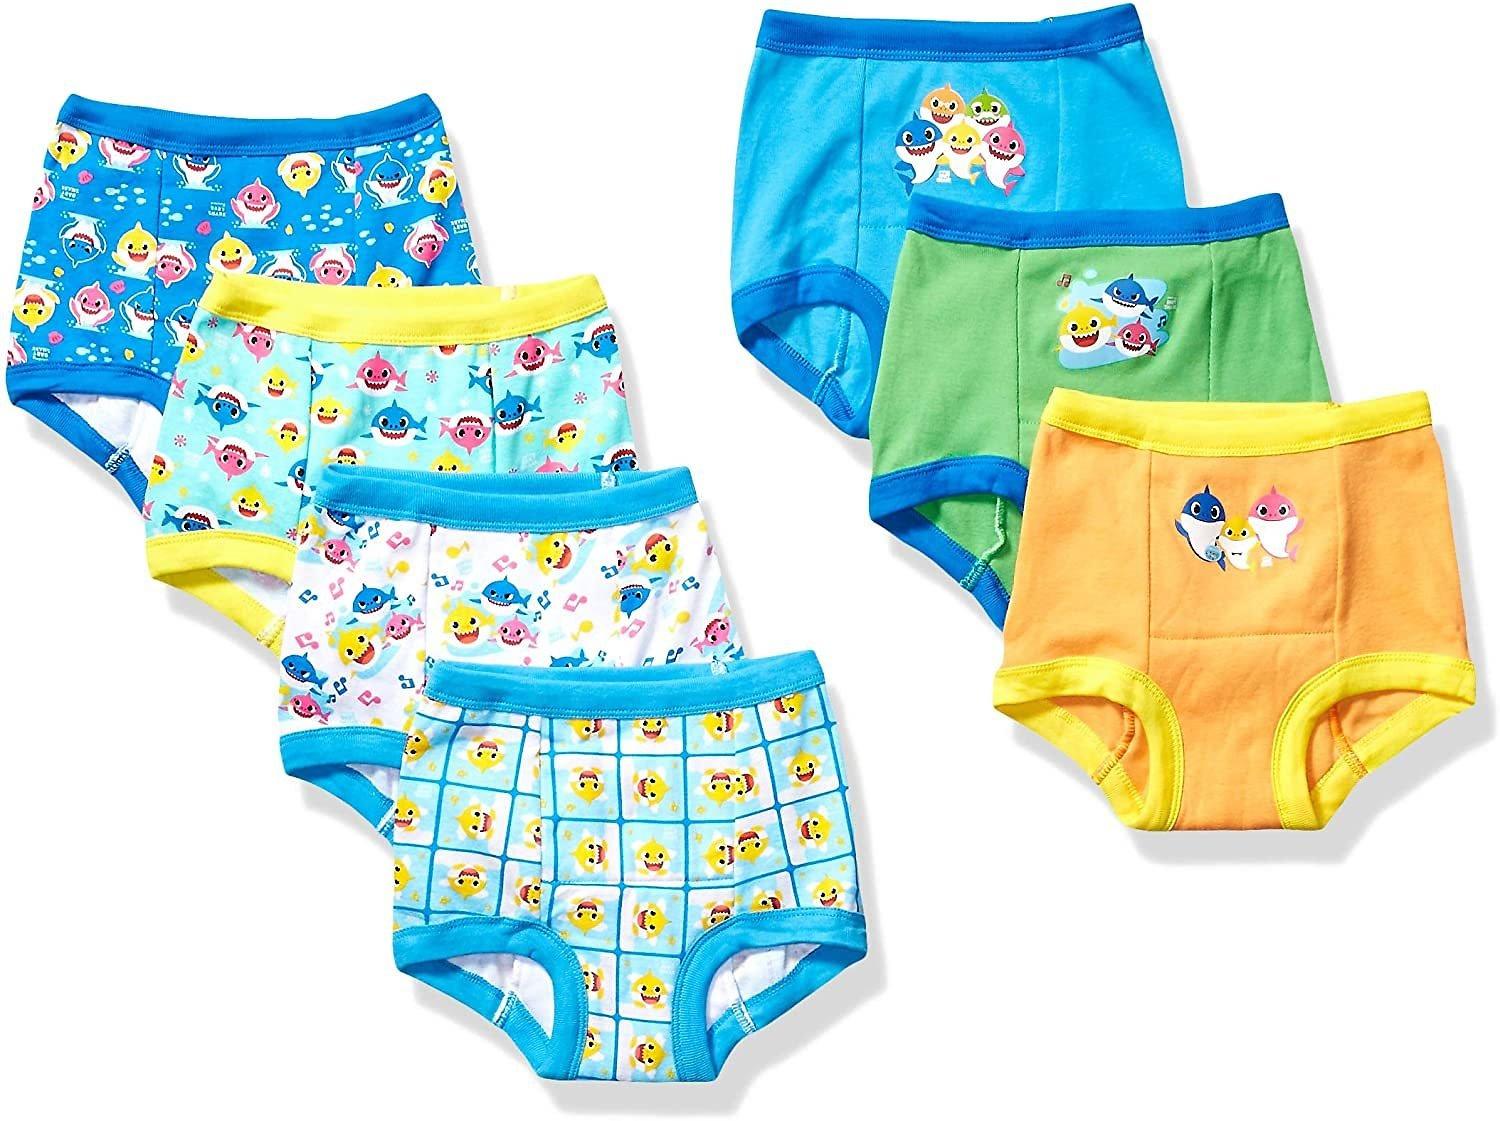 7pk Baby Shark Potty Training Pant (2T Only)